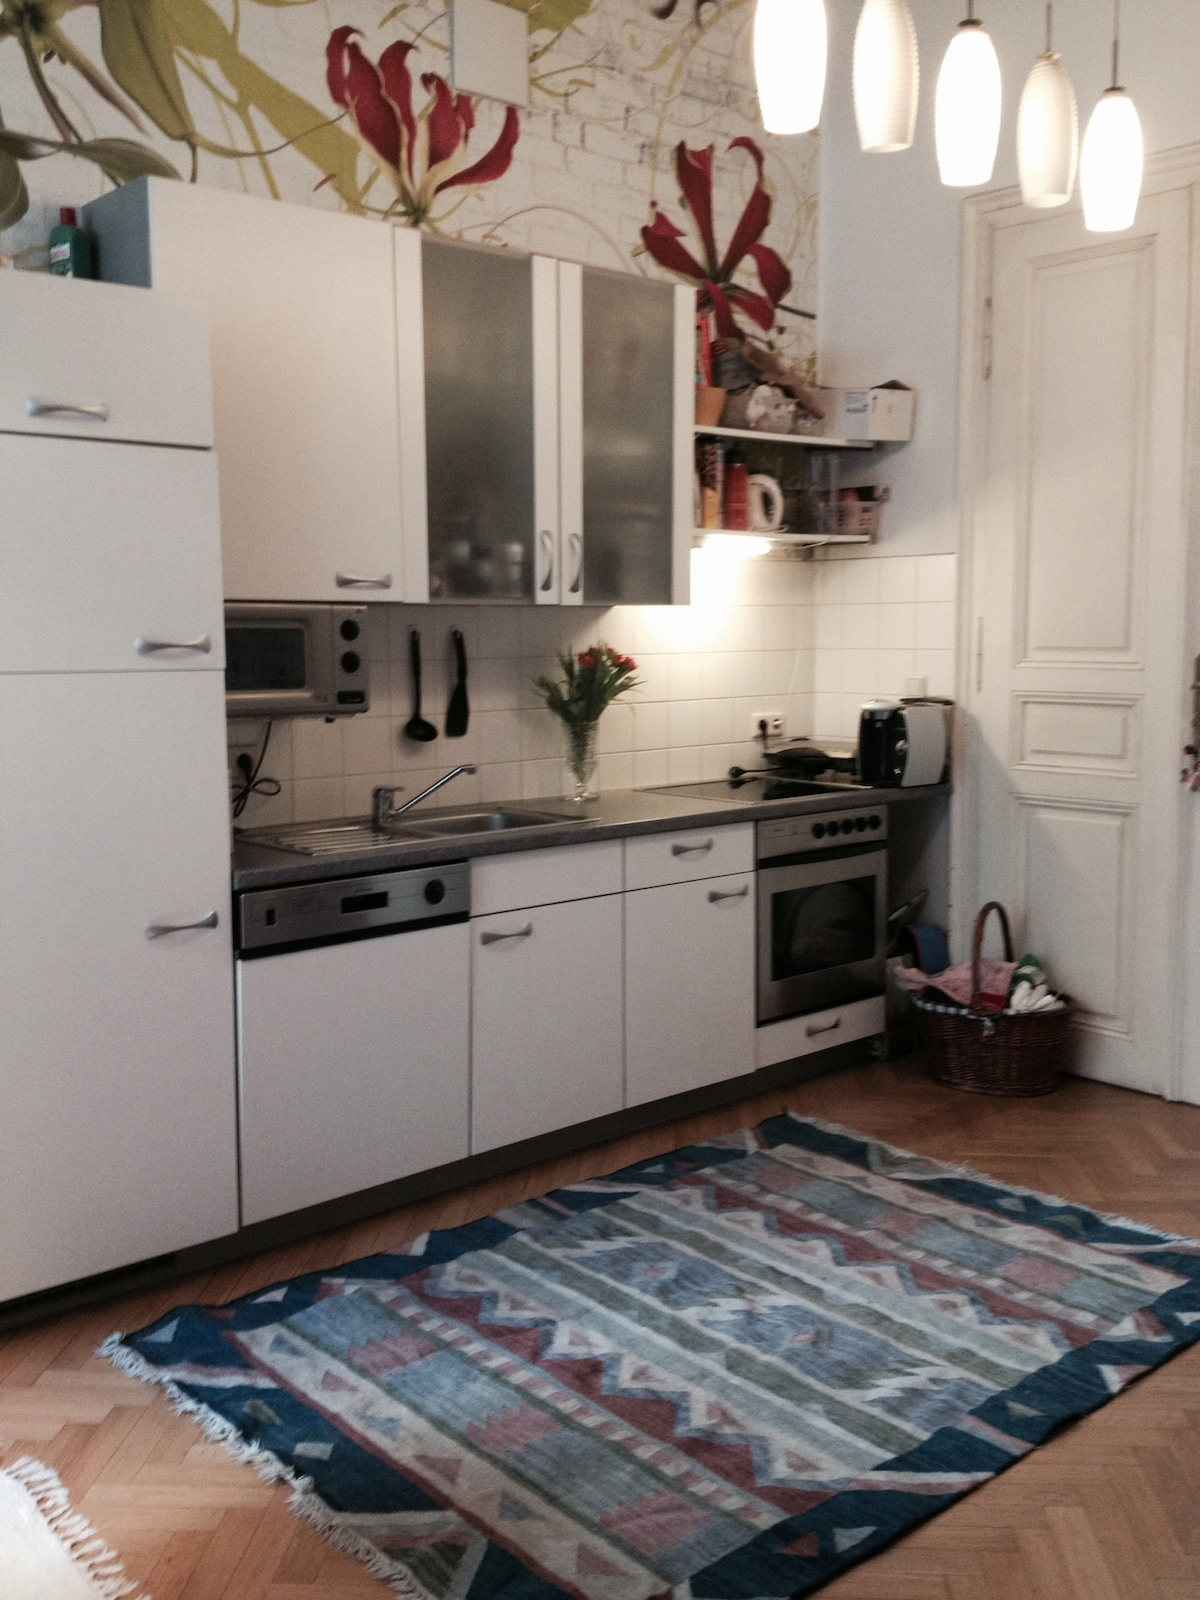 20m² in spacious&charming city apmt